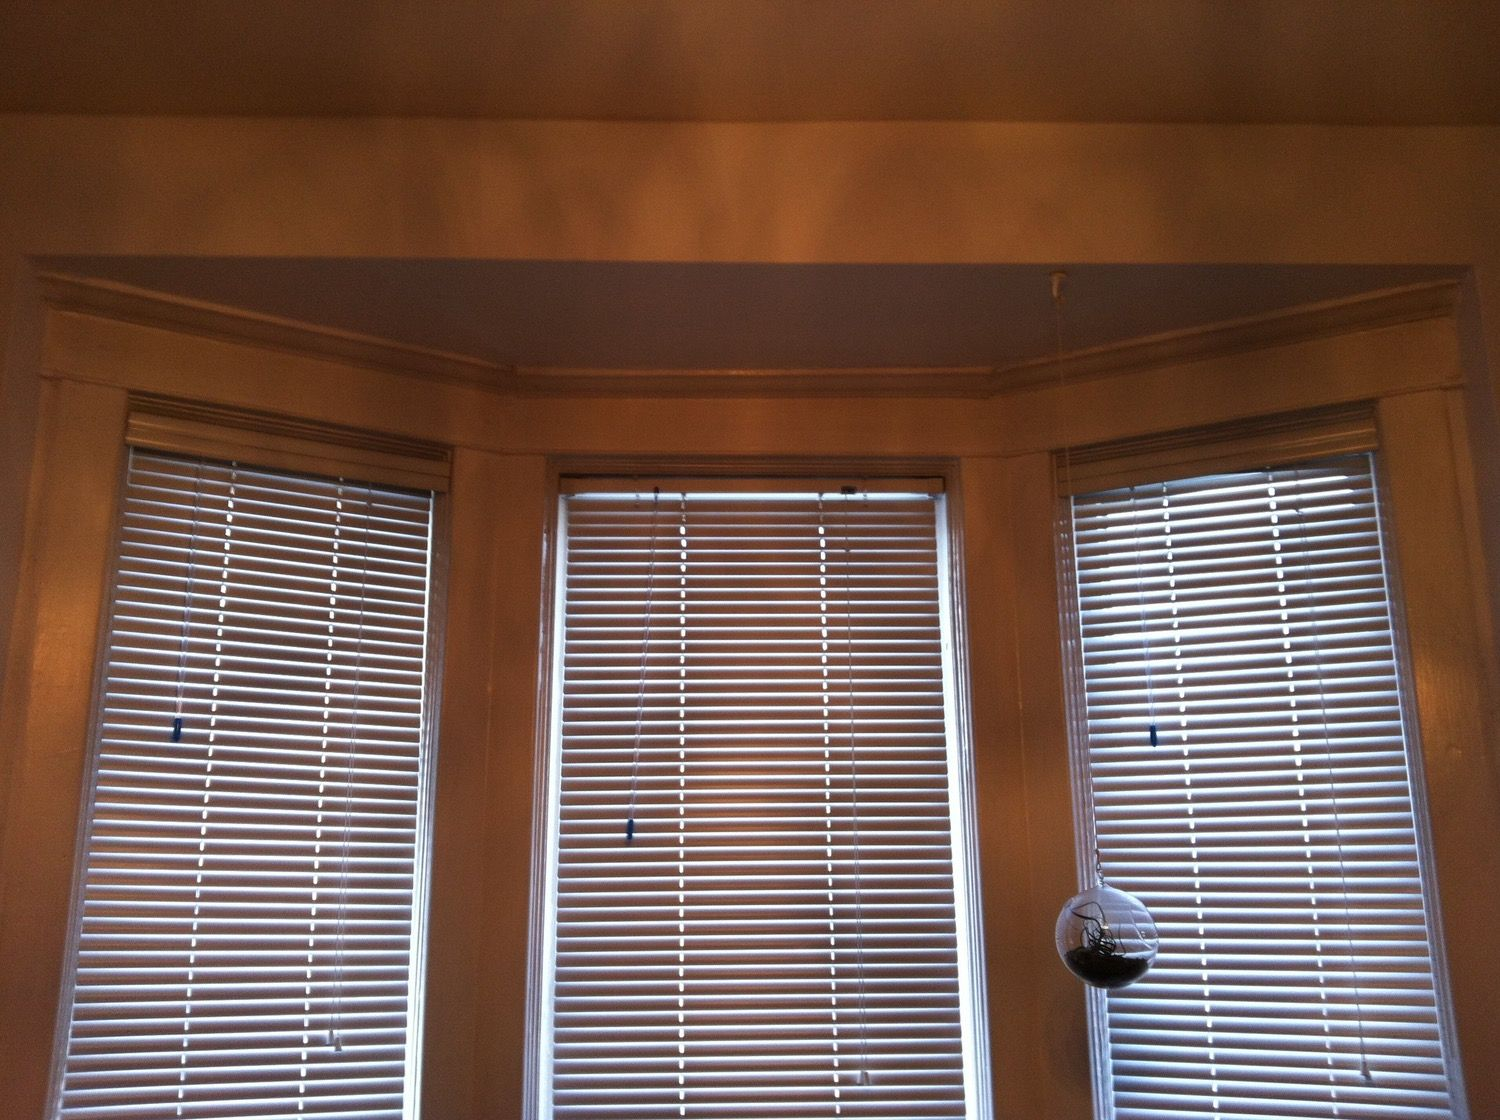 Q: I have two large bay windows (6'6